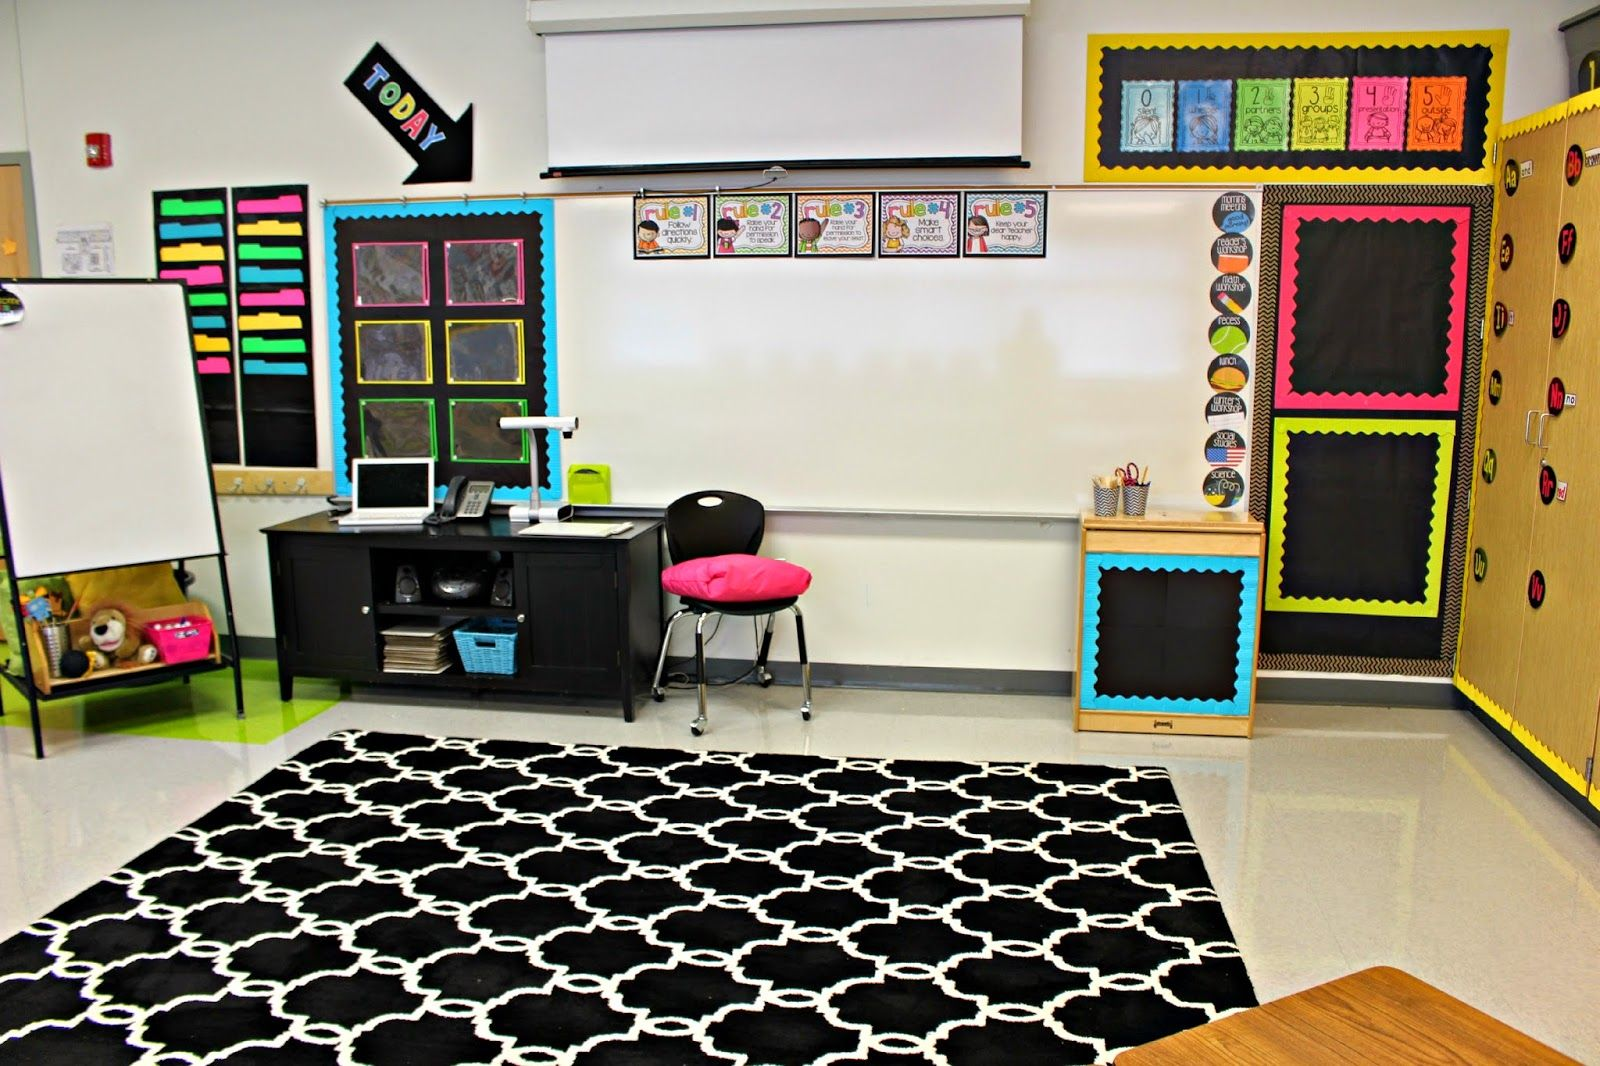 Classroom Decor 4th Grade : The gallery for gt fourth grade classroom decorating ideas